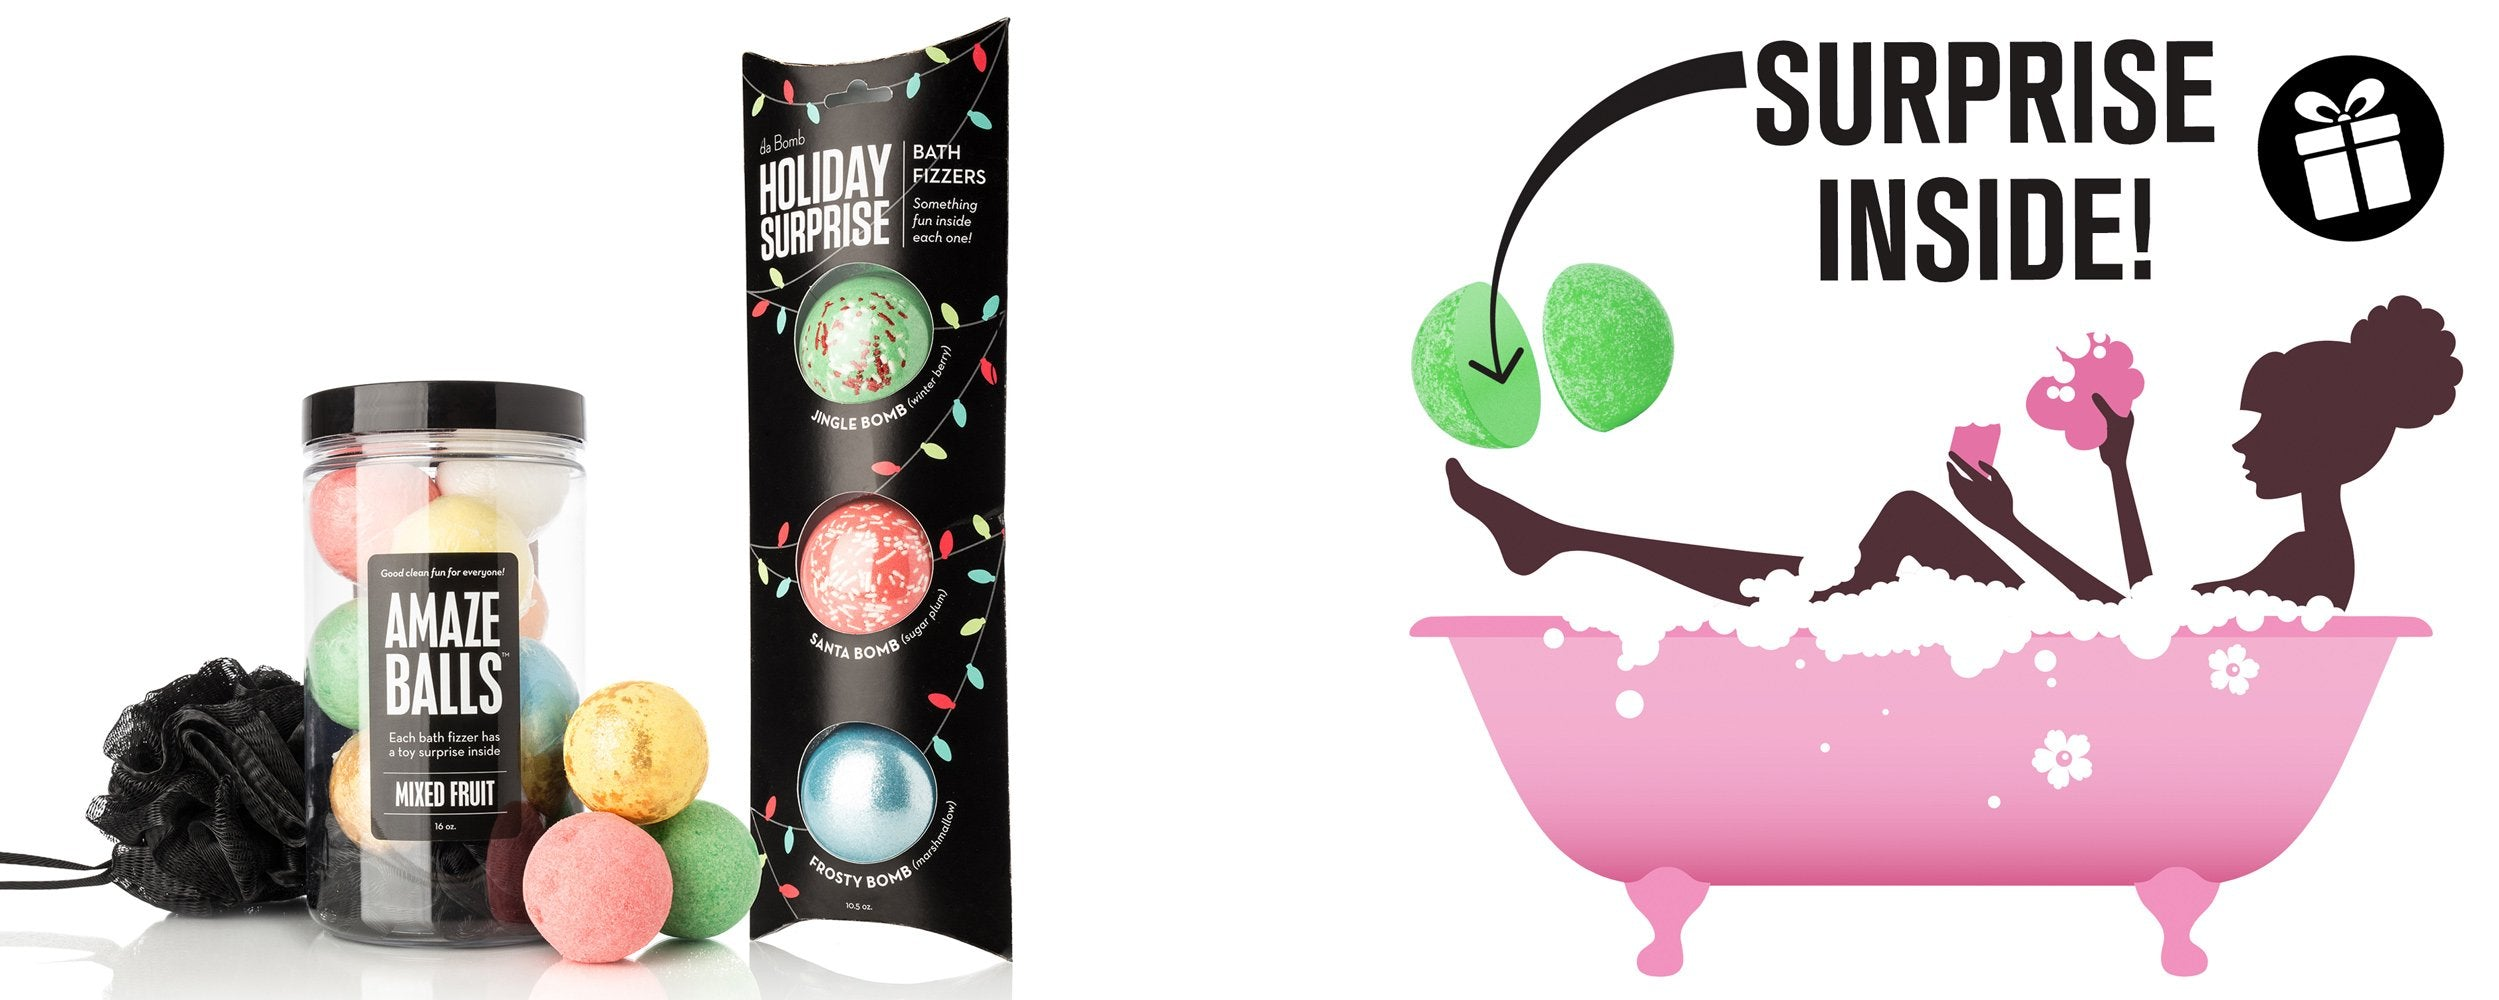 DA BOMB FIZZERS - Relaxing Bath Bombs for Every Mood - Amazeballs Bomb Jar + Holiday Exclusive Pack